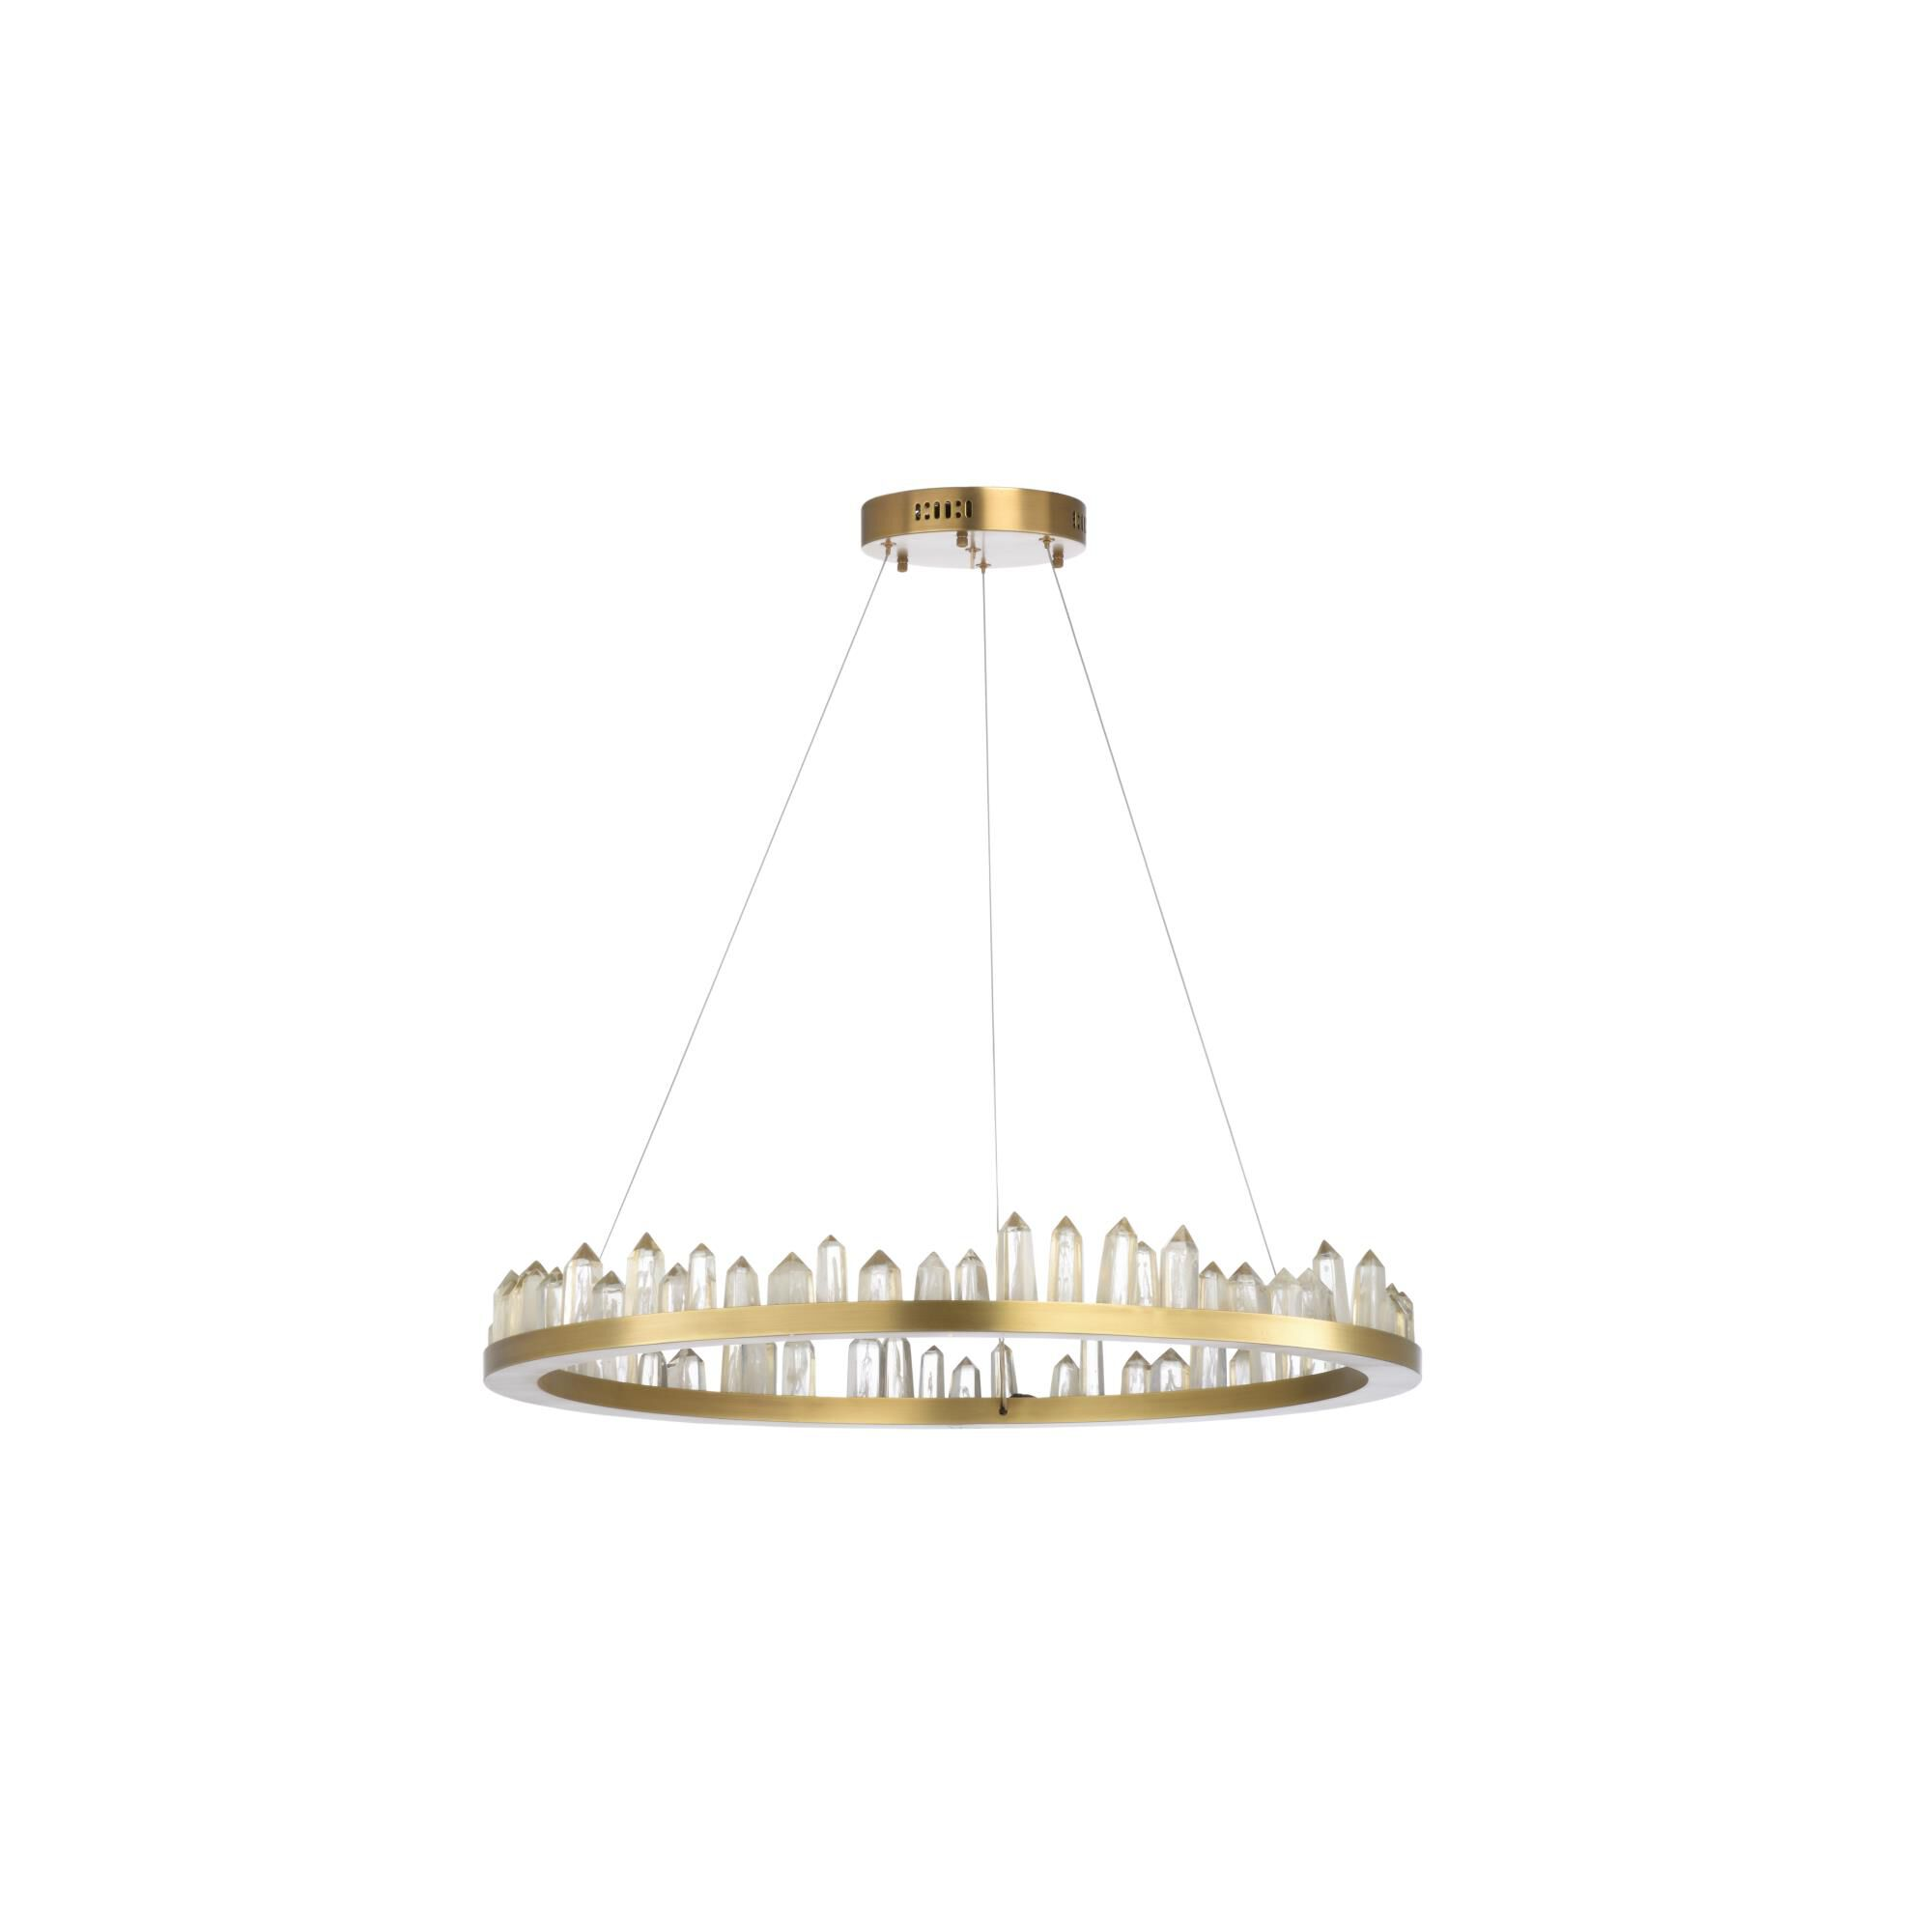 Chelsea House Jones 31 Inch 1 Light Led Chandelier Jones - 69622 - Modern Contemporary Chandelier